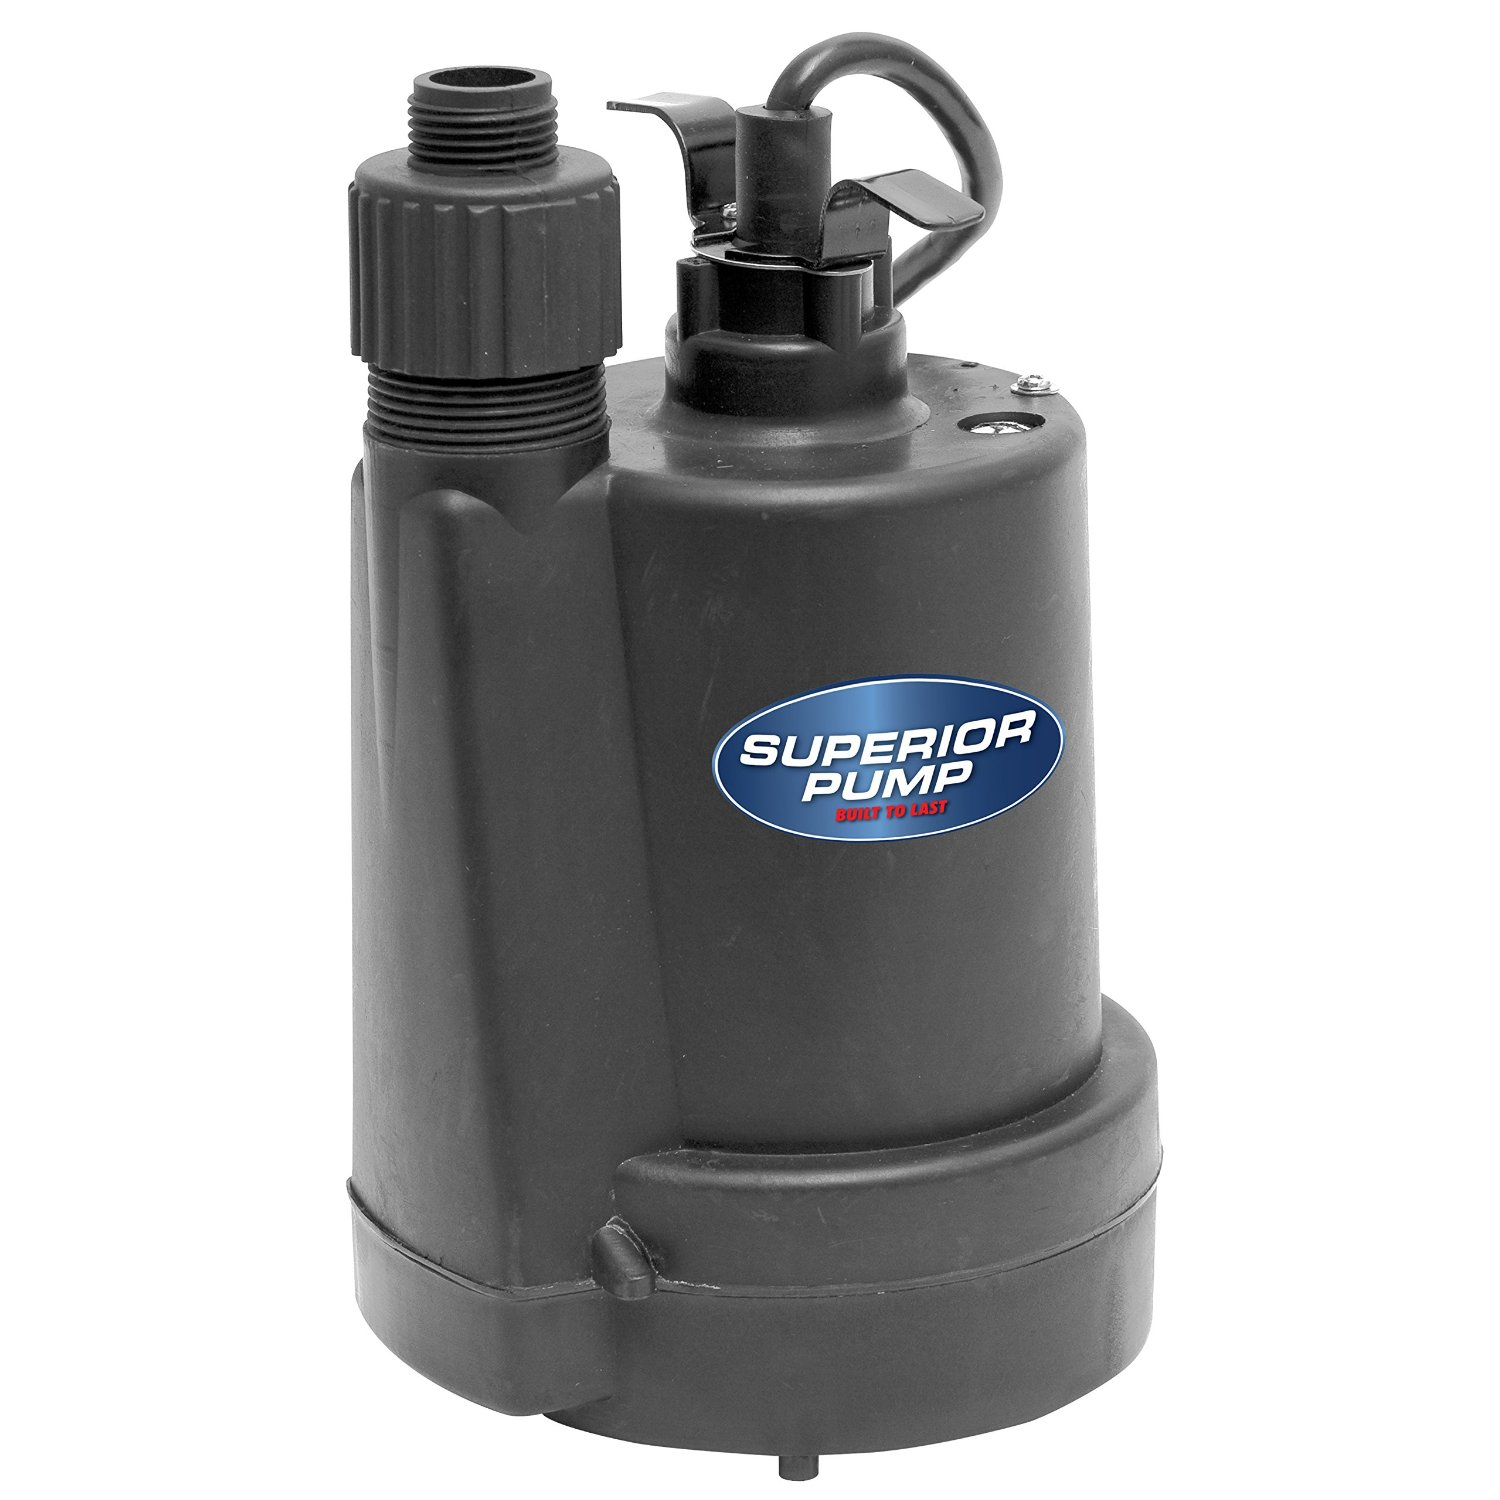 Best Sump Pump Reviews May 2017 With Comparison Chart